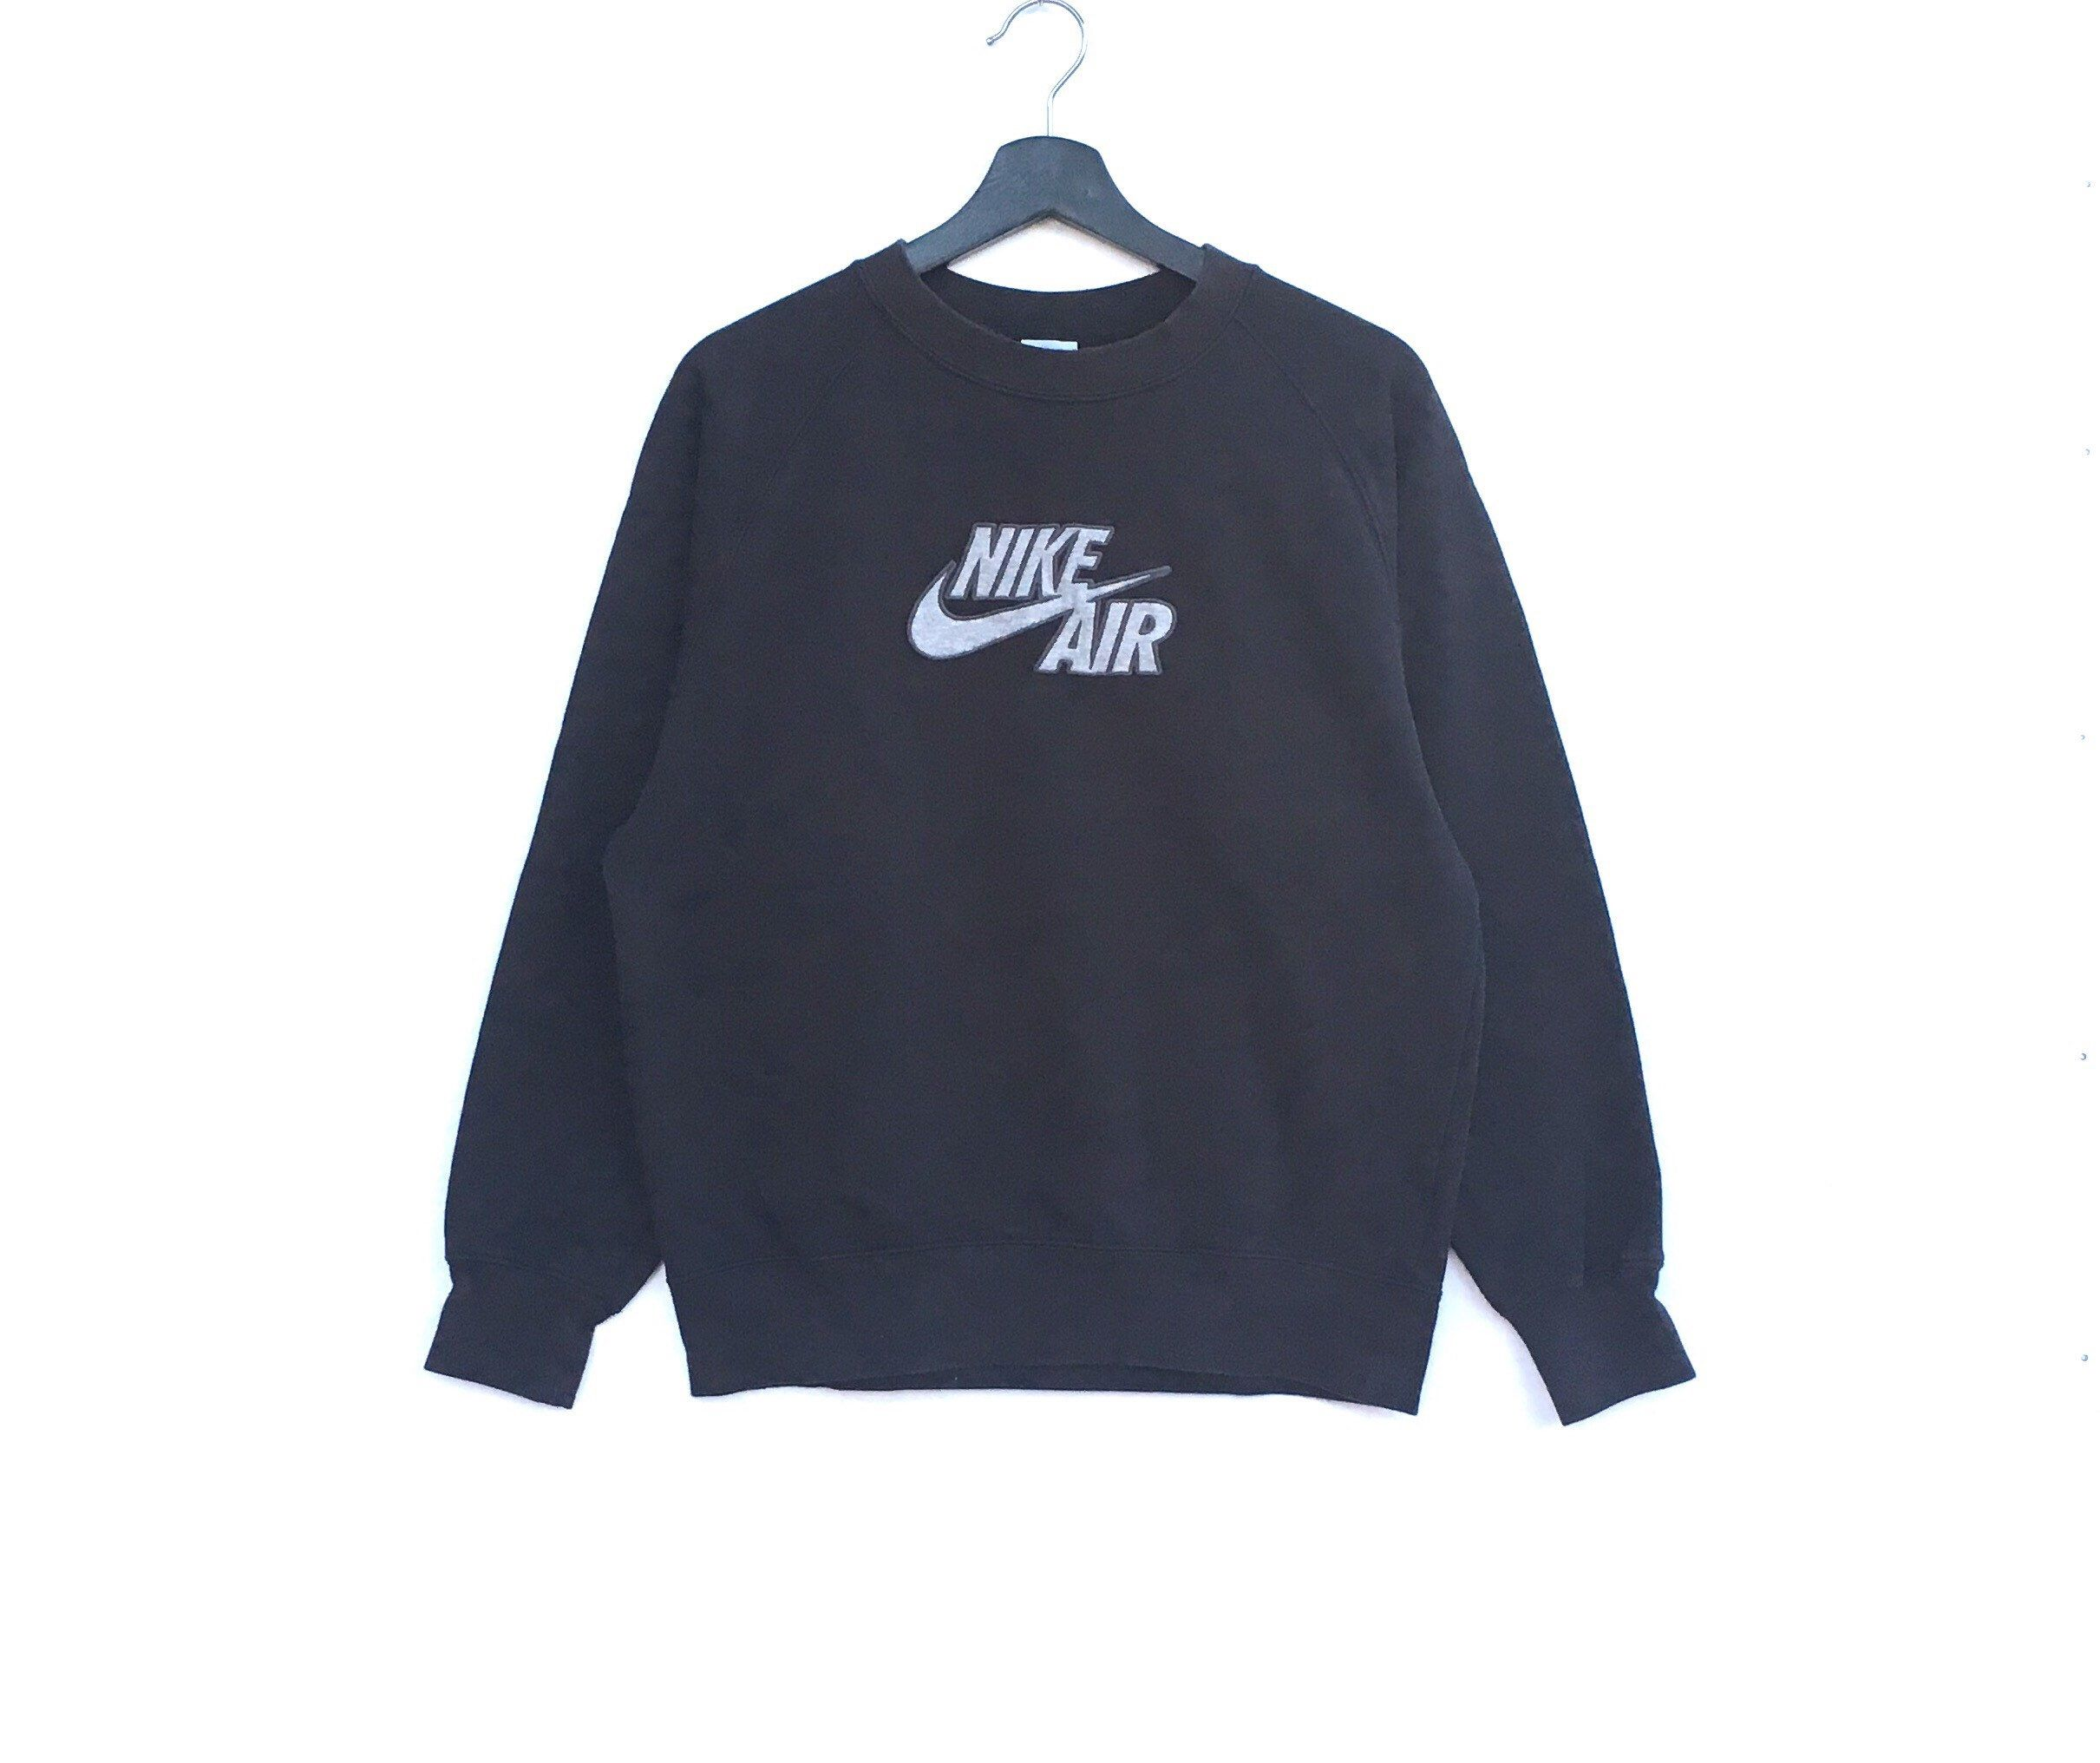 Excited To Share The Latest Addition To My Etsy Shop Rare Nike Air Big Swoosh Logo Men Clothing Sweatshirt P Pullover Sweatshirts Nike Sweater Vintage Nike [ 2032 x 2421 Pixel ]